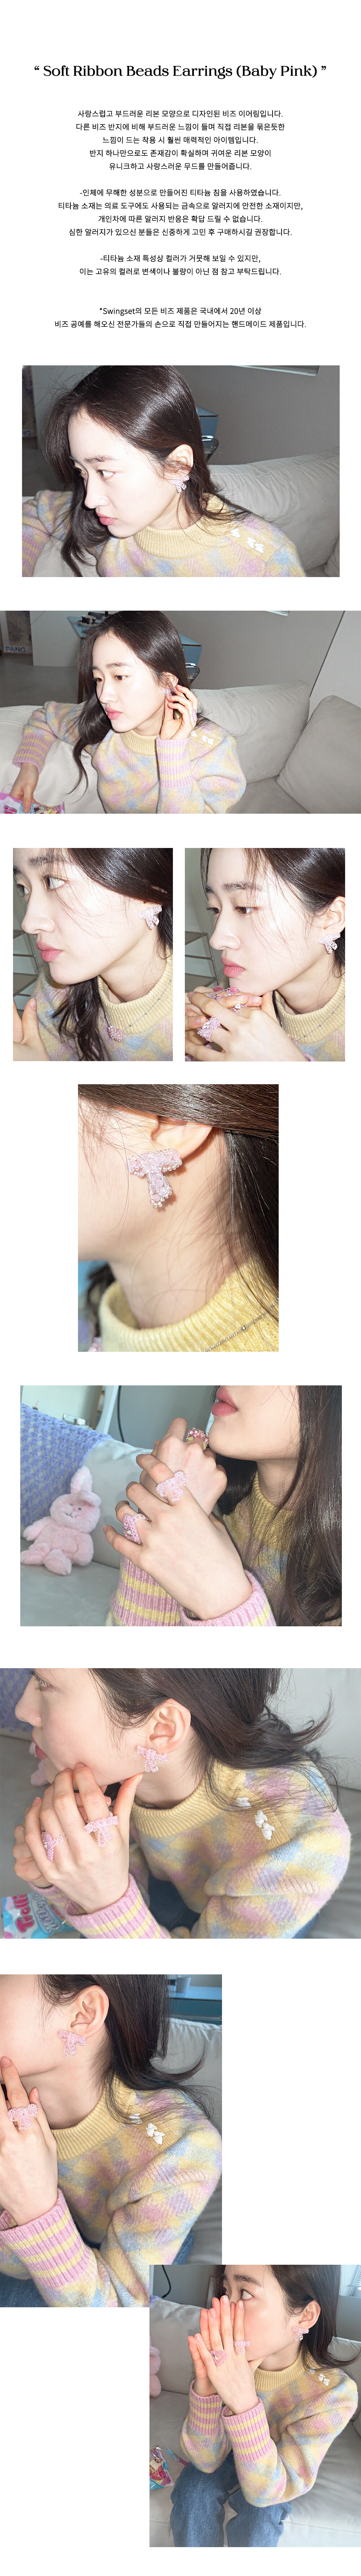 Soft Ribbon Beads Earrings (Baby Pink)